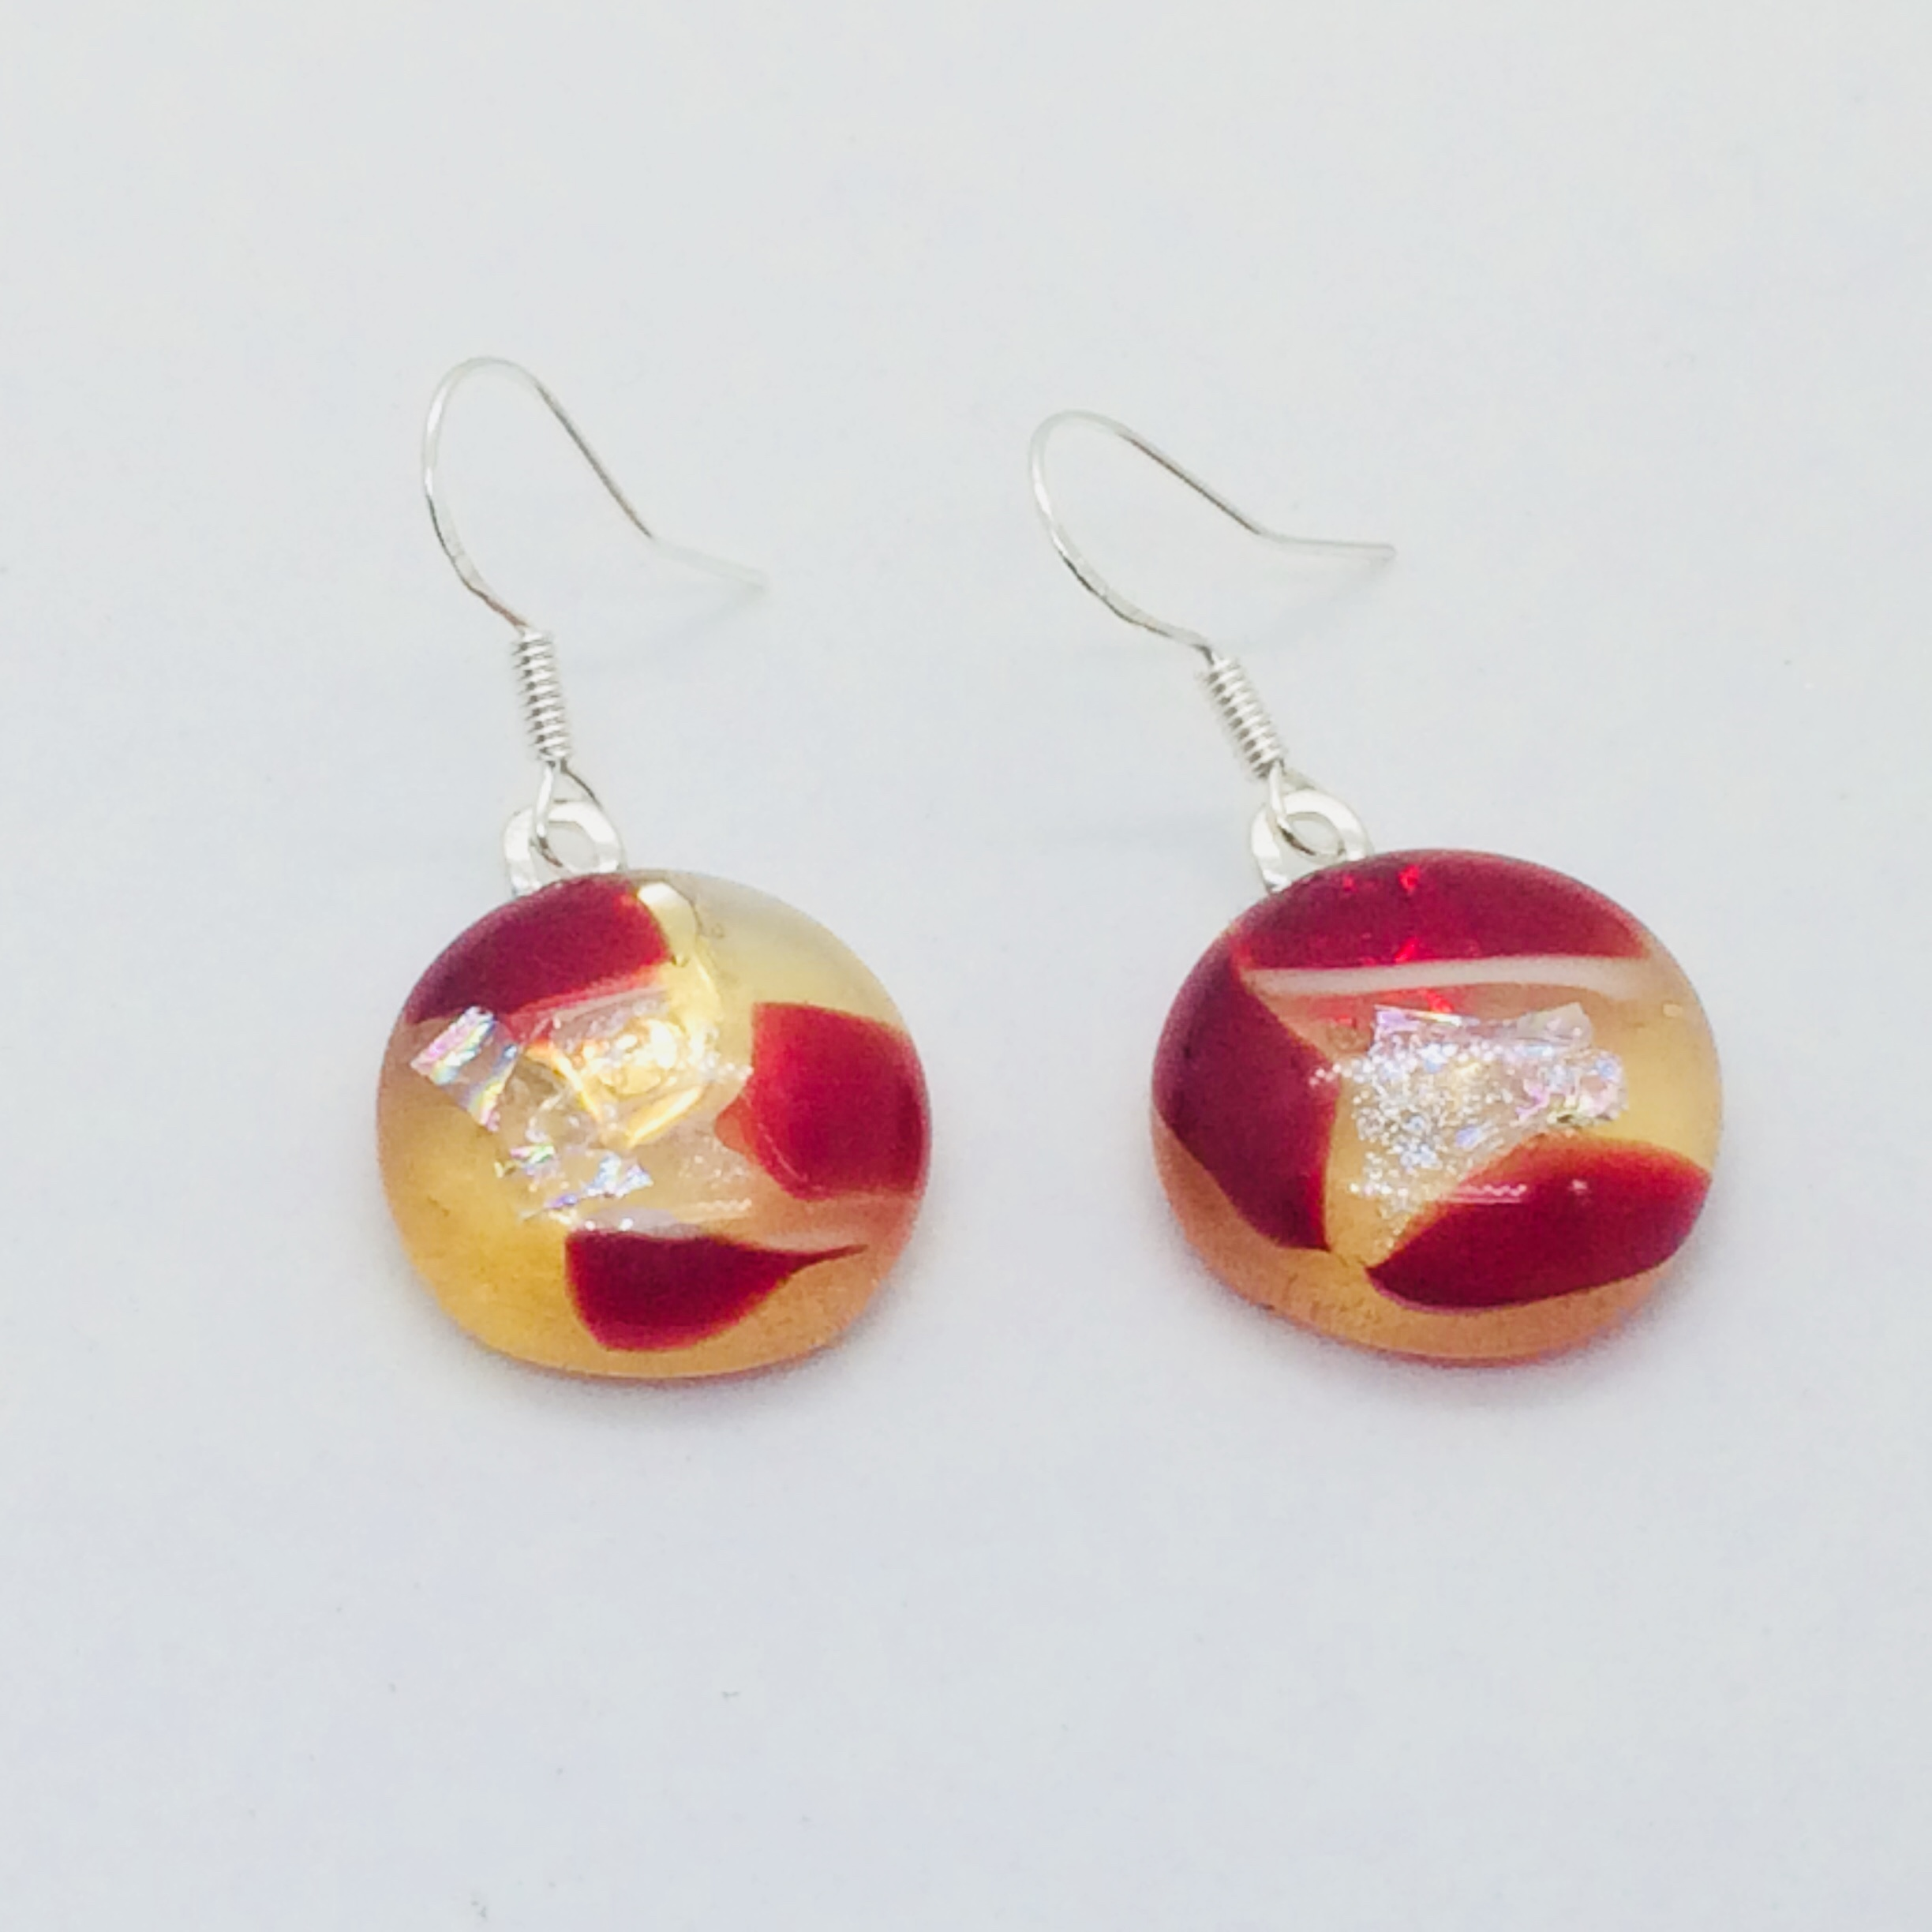 Cherry and Lemon earrings